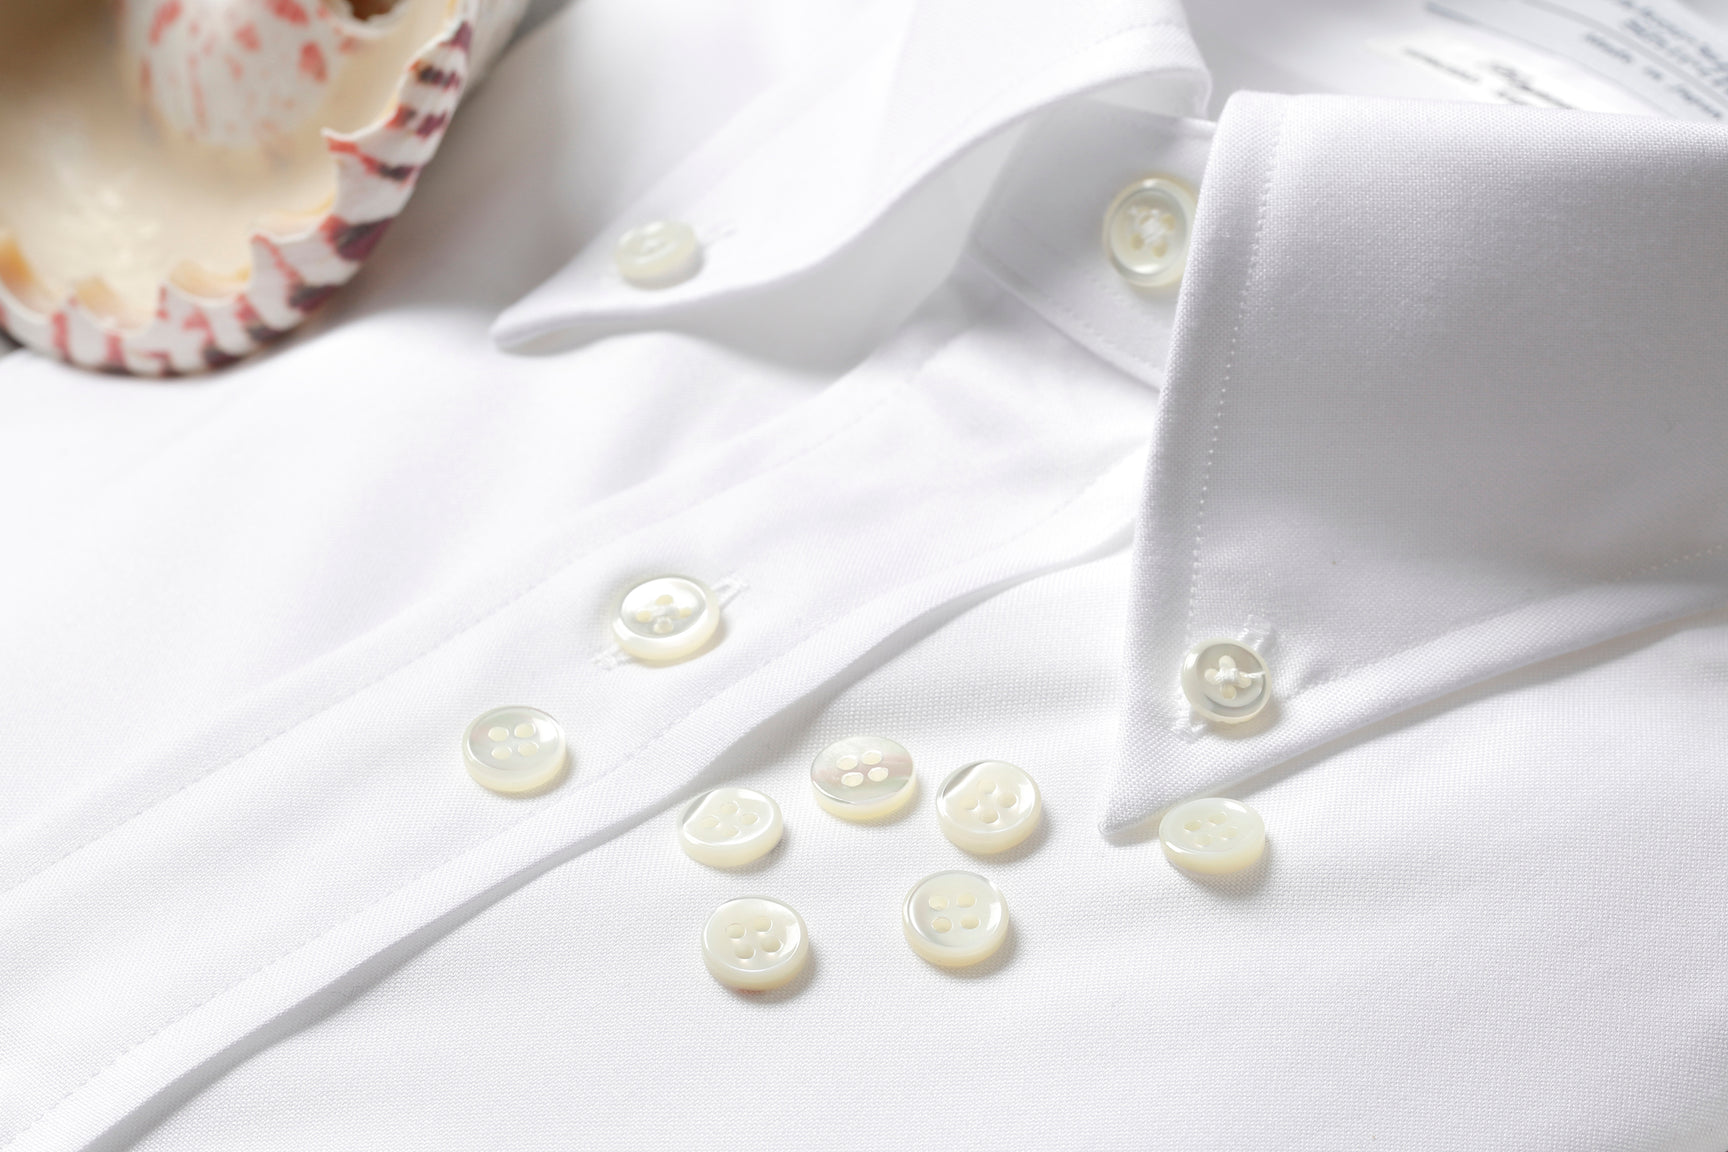 White button-down shirt collar with shell buttons.